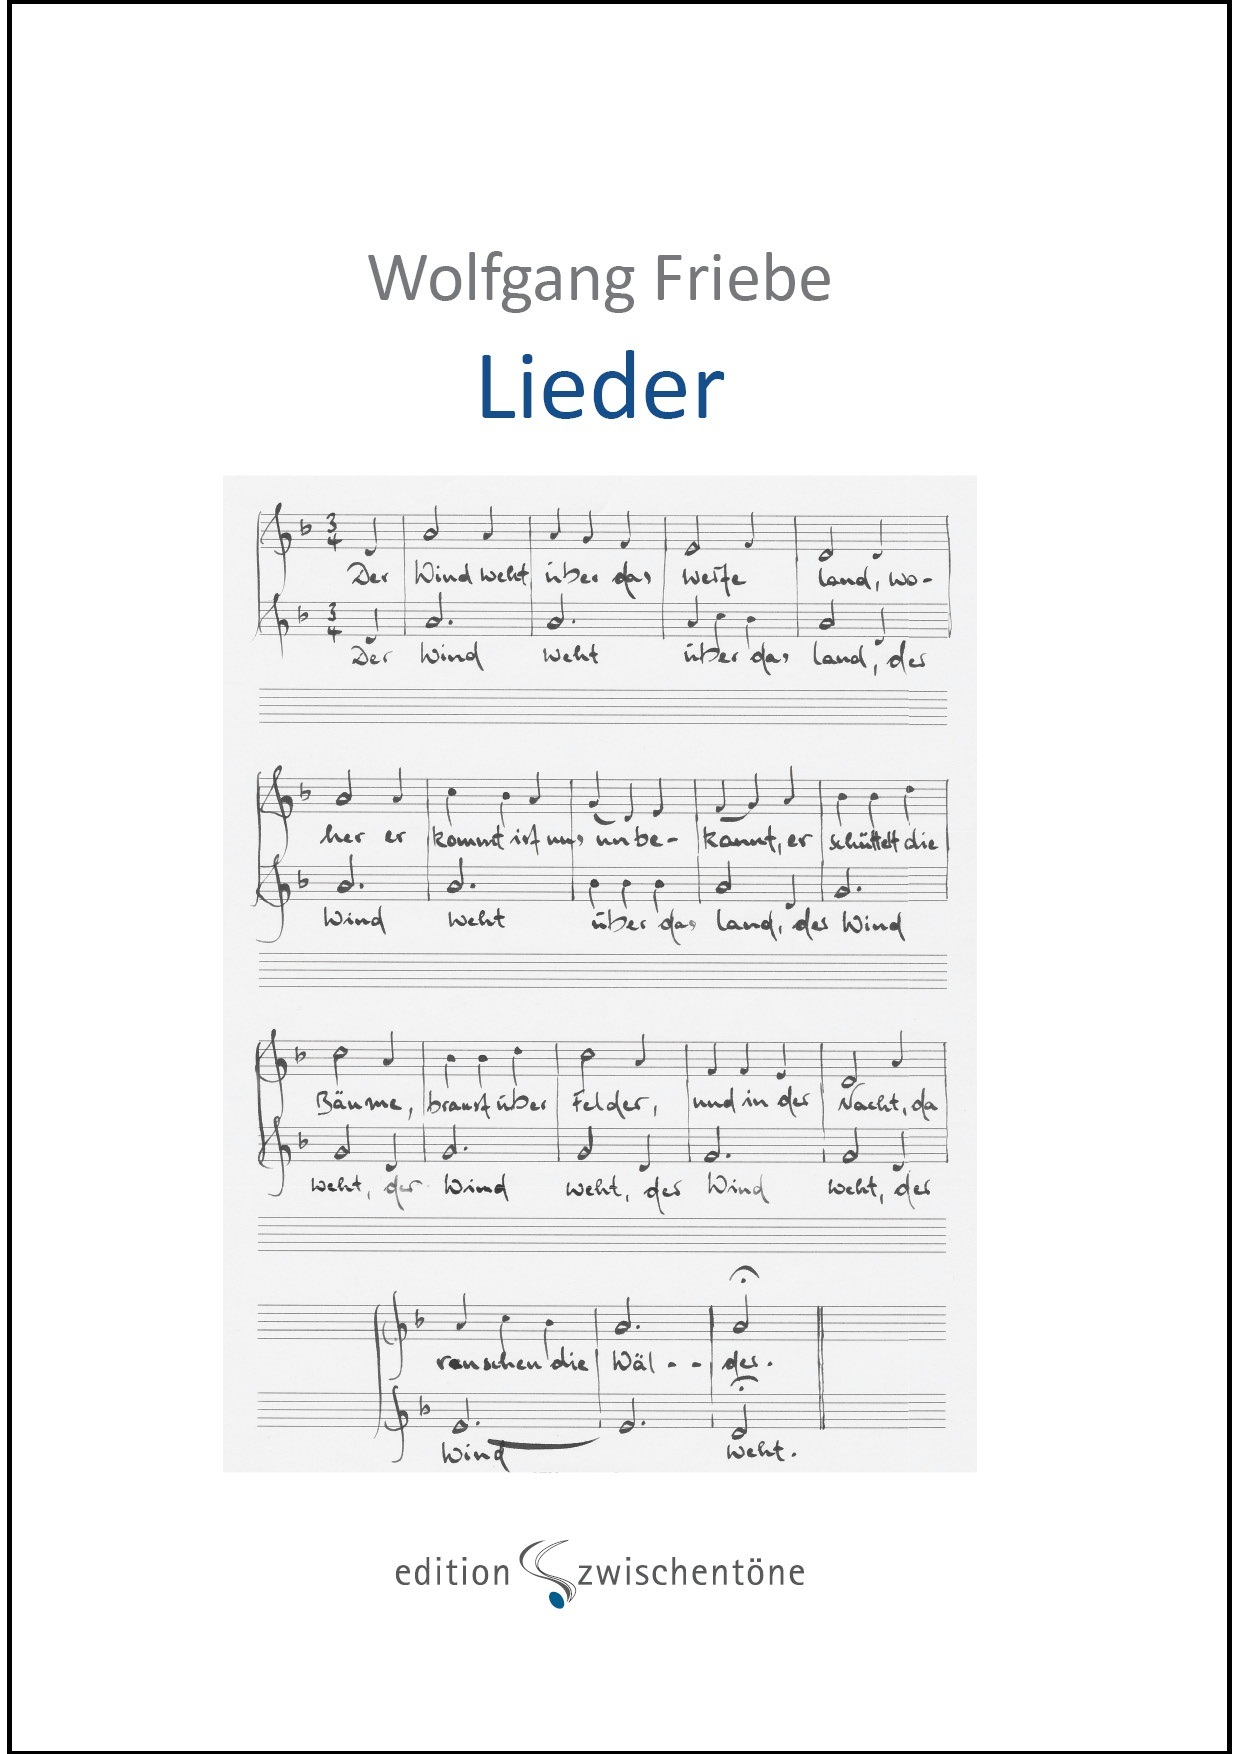 friebe,_lieder_COVER_r